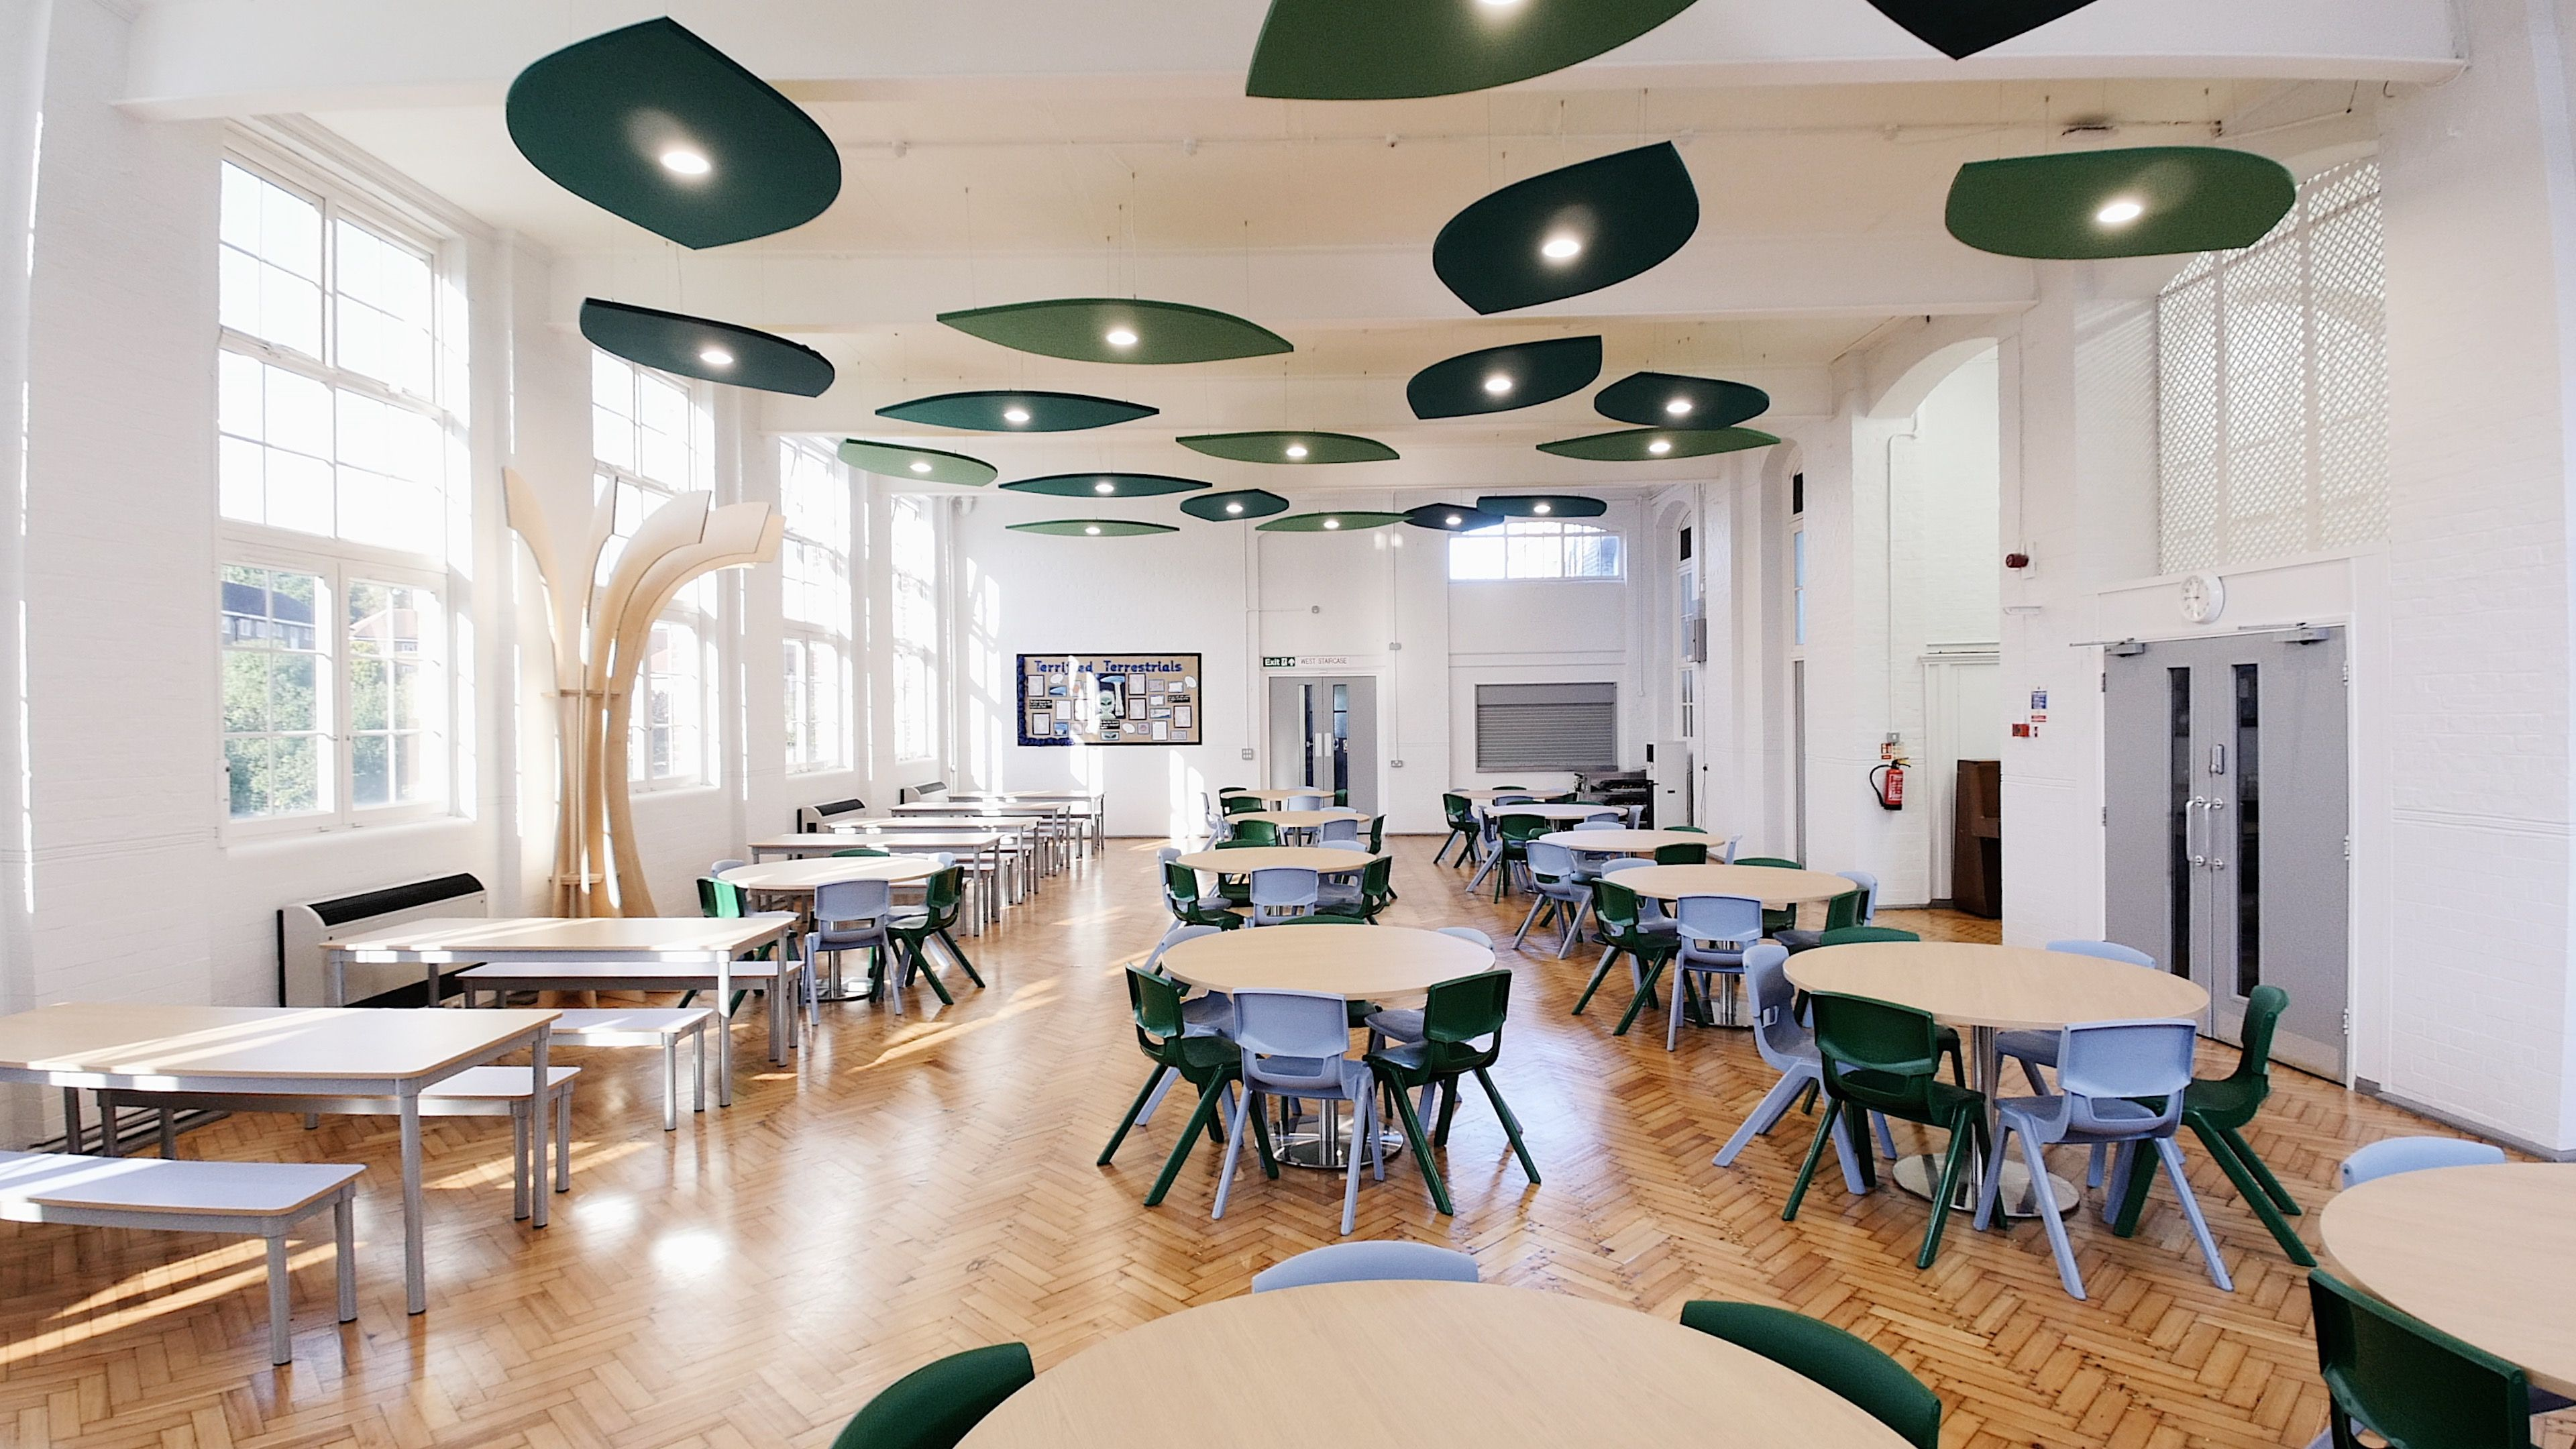 Awesome Dining Area Designs For Schools Alexander Mcleod